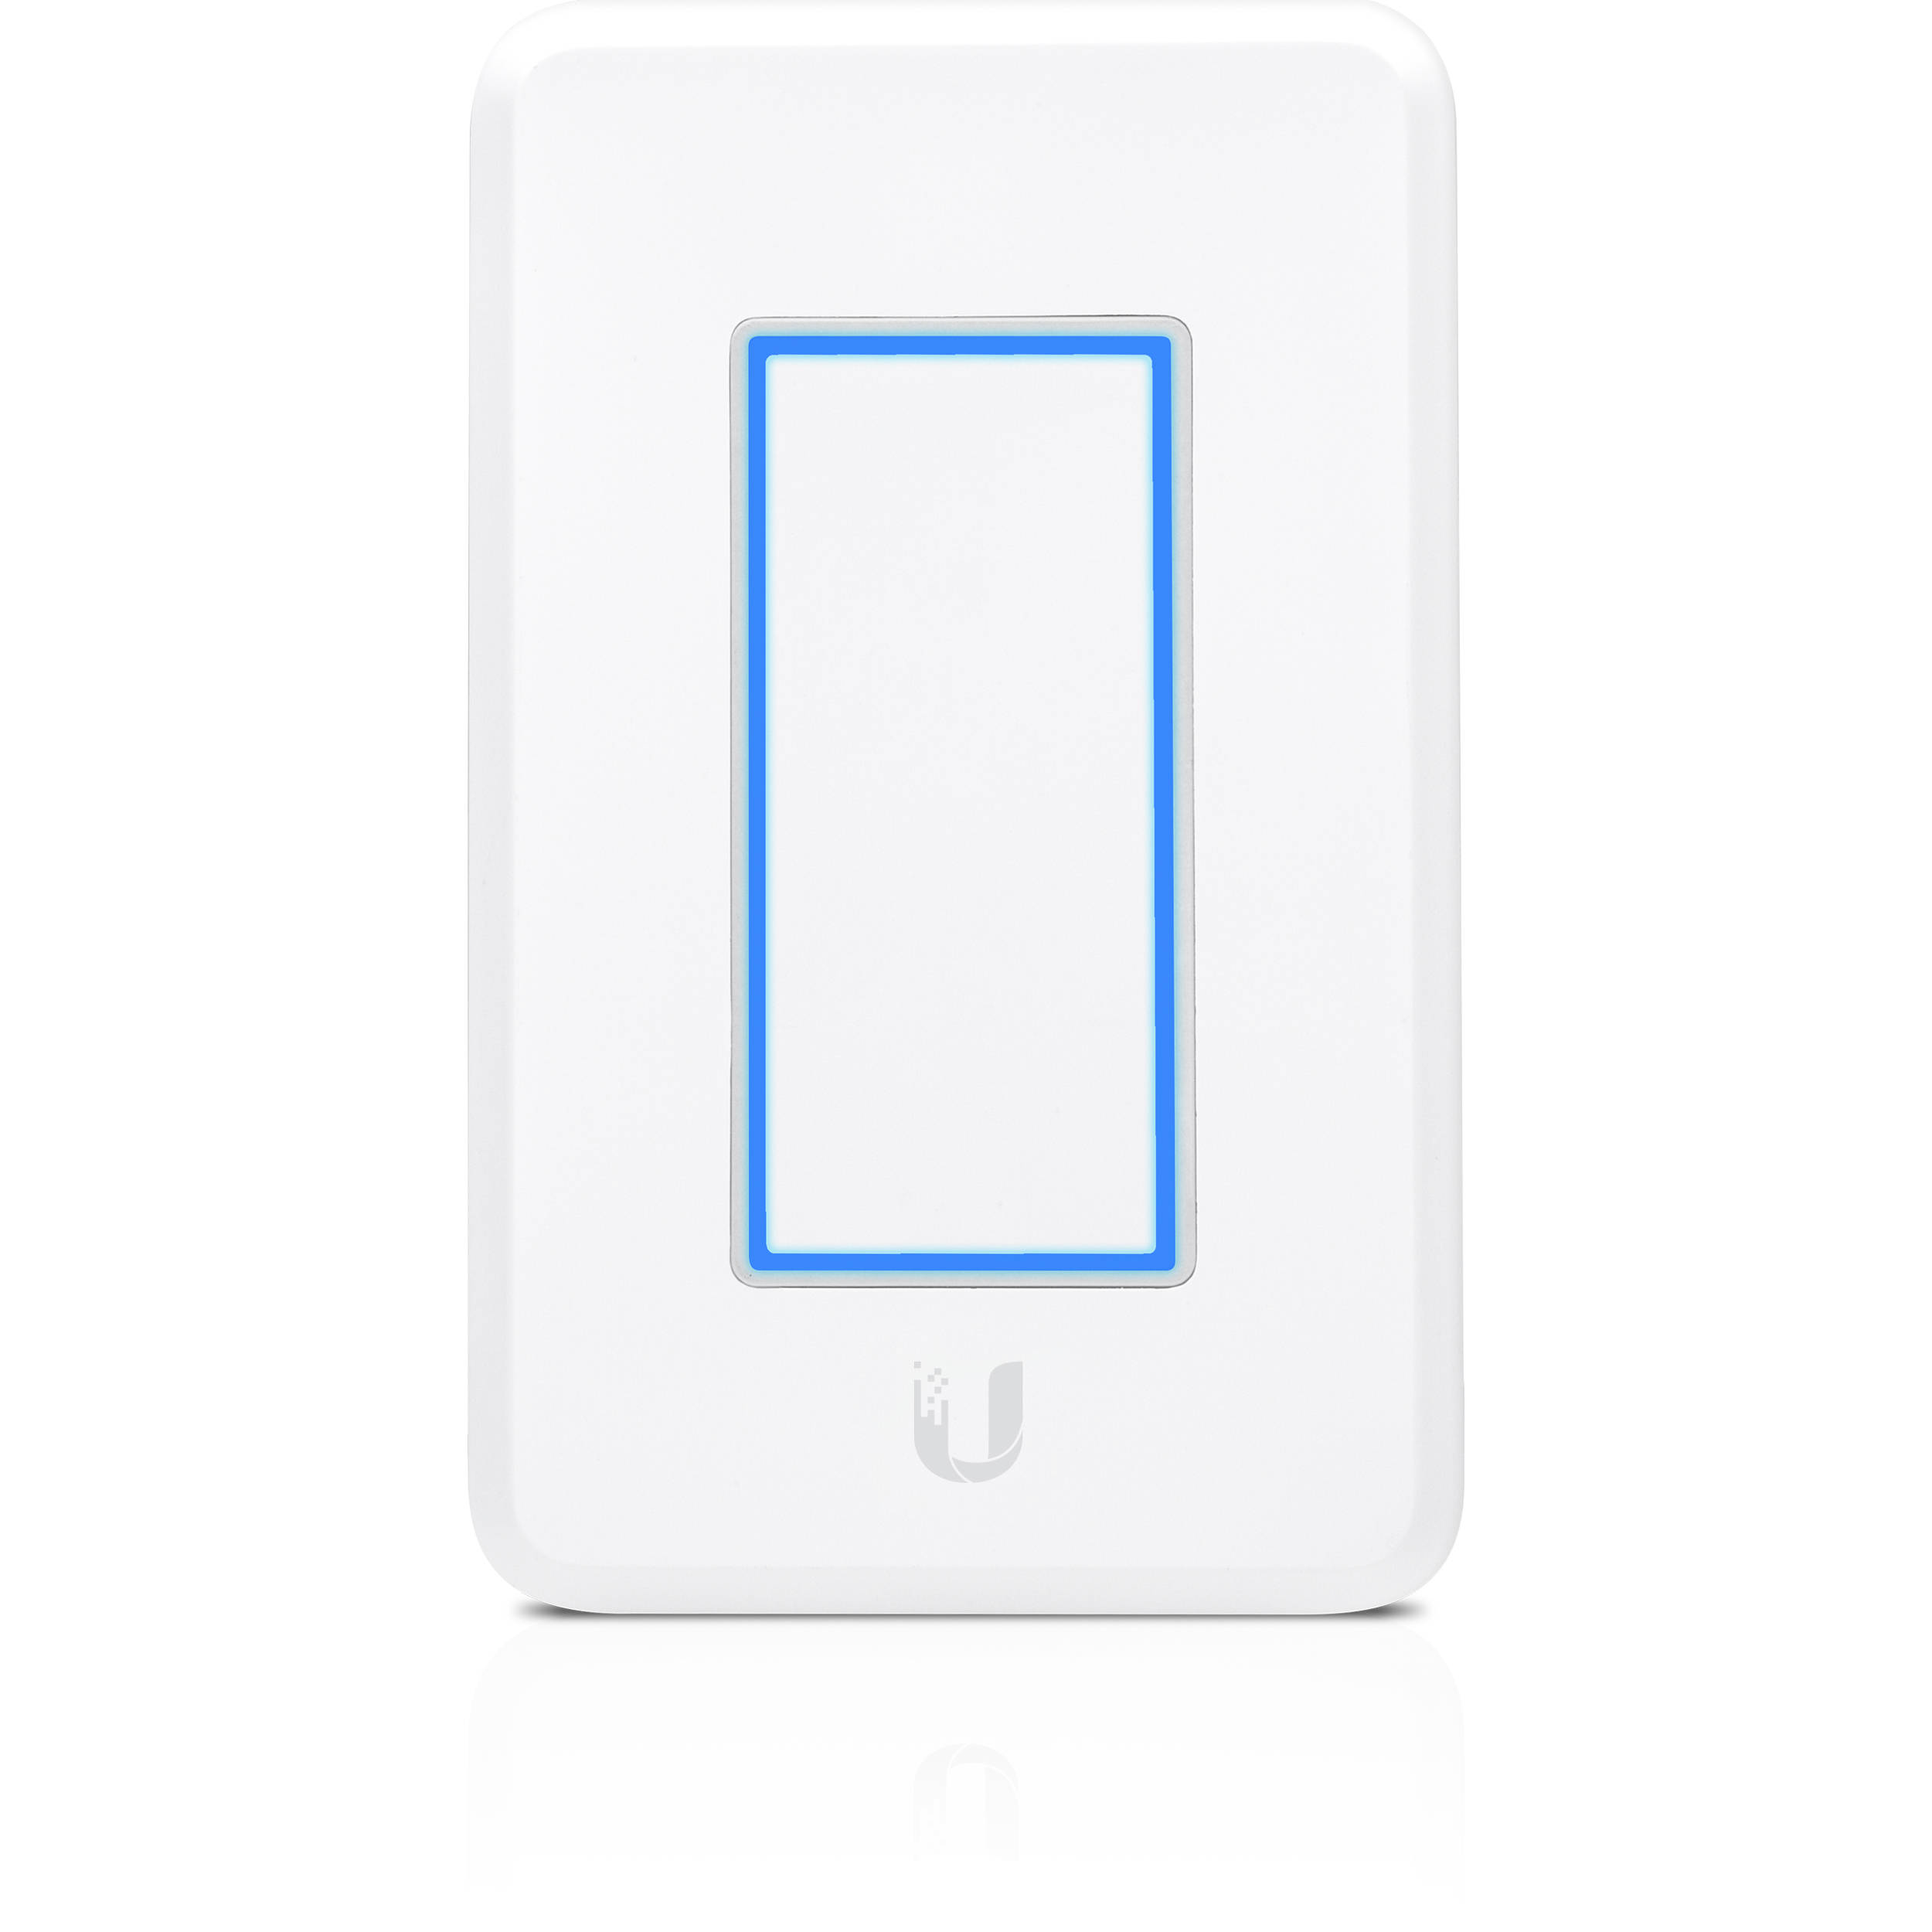 UDIM-AT UniFi Dimmer Switch UDIM-AT